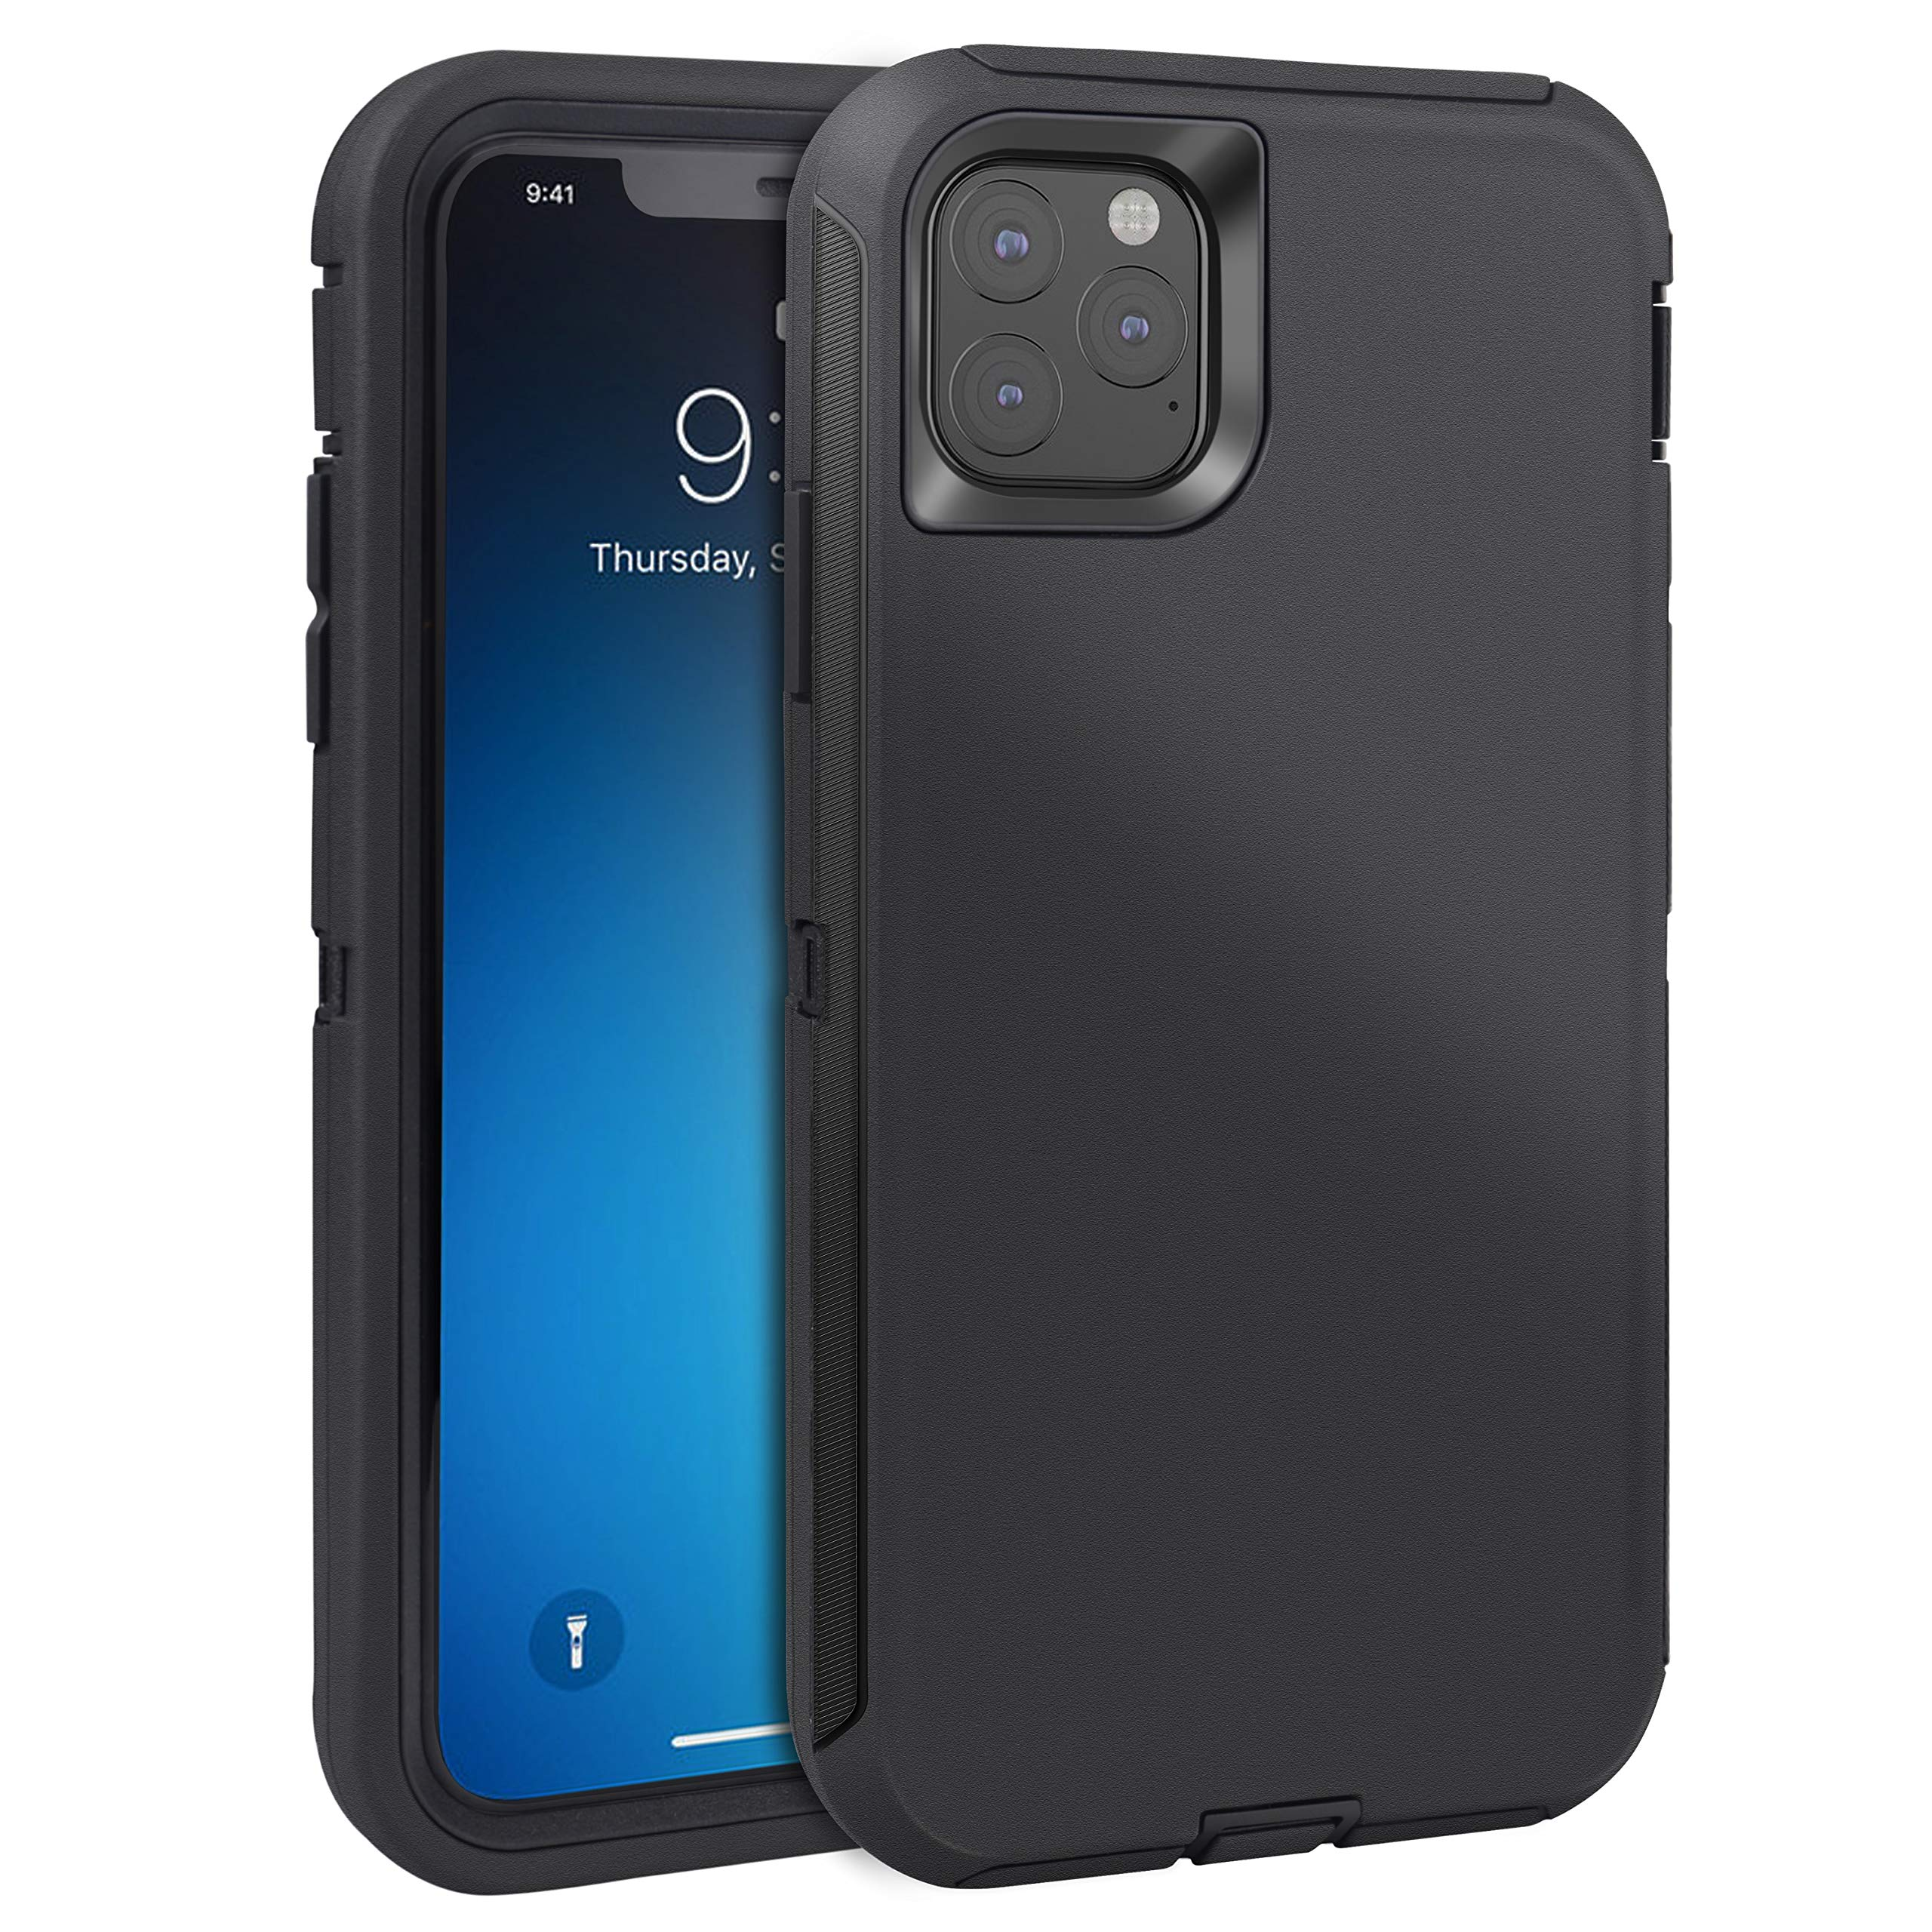 FOGEEK Case for iPhone 11 Pro Max, iPhone XI Pro Max Case, Heavy Duty Rugged Case, Full Body Protective Cover [Shockproof] Compatible for iPhone 11 Pro Max 2019 [6.5 Inch] (Black)